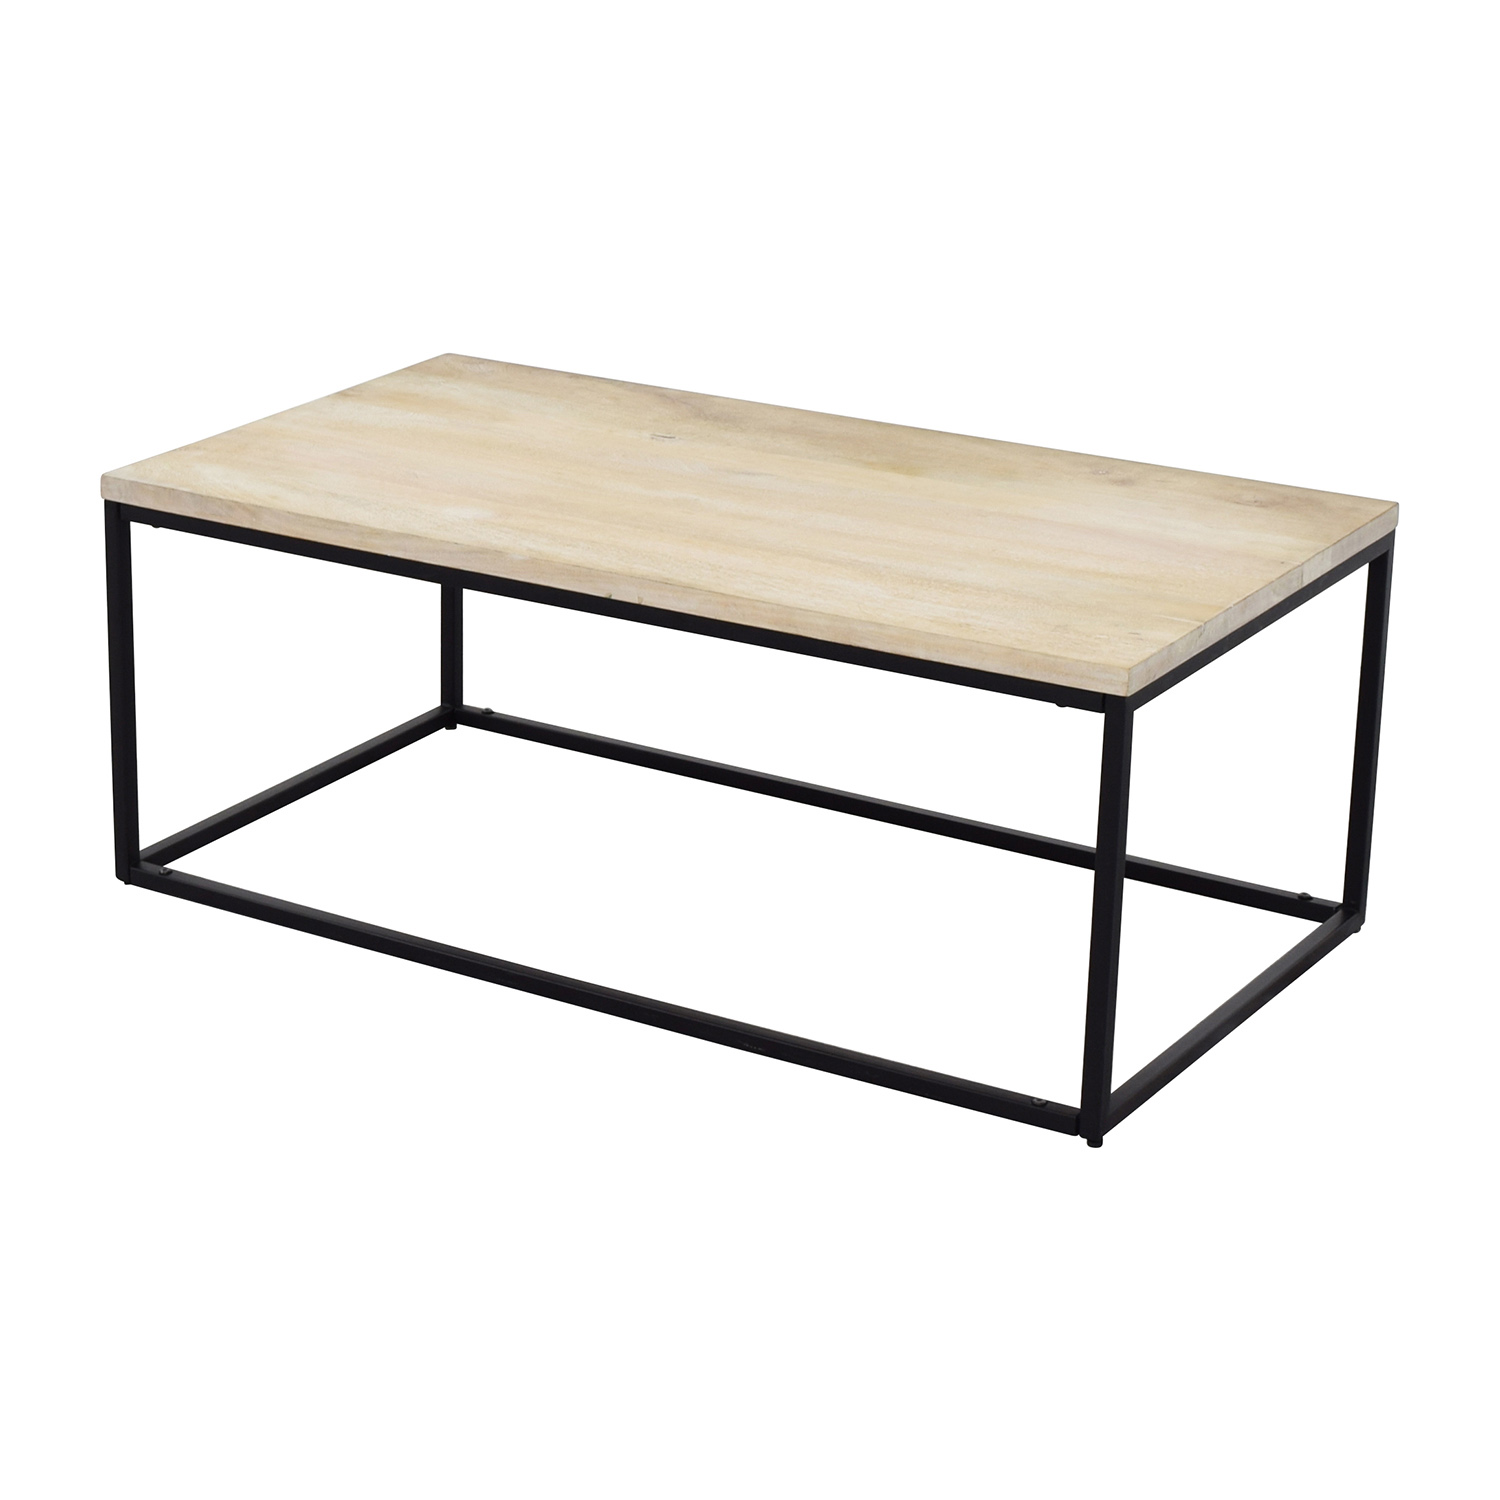 28 Off West Elm West Elm Box Frame Coffee Table White Wash Tables